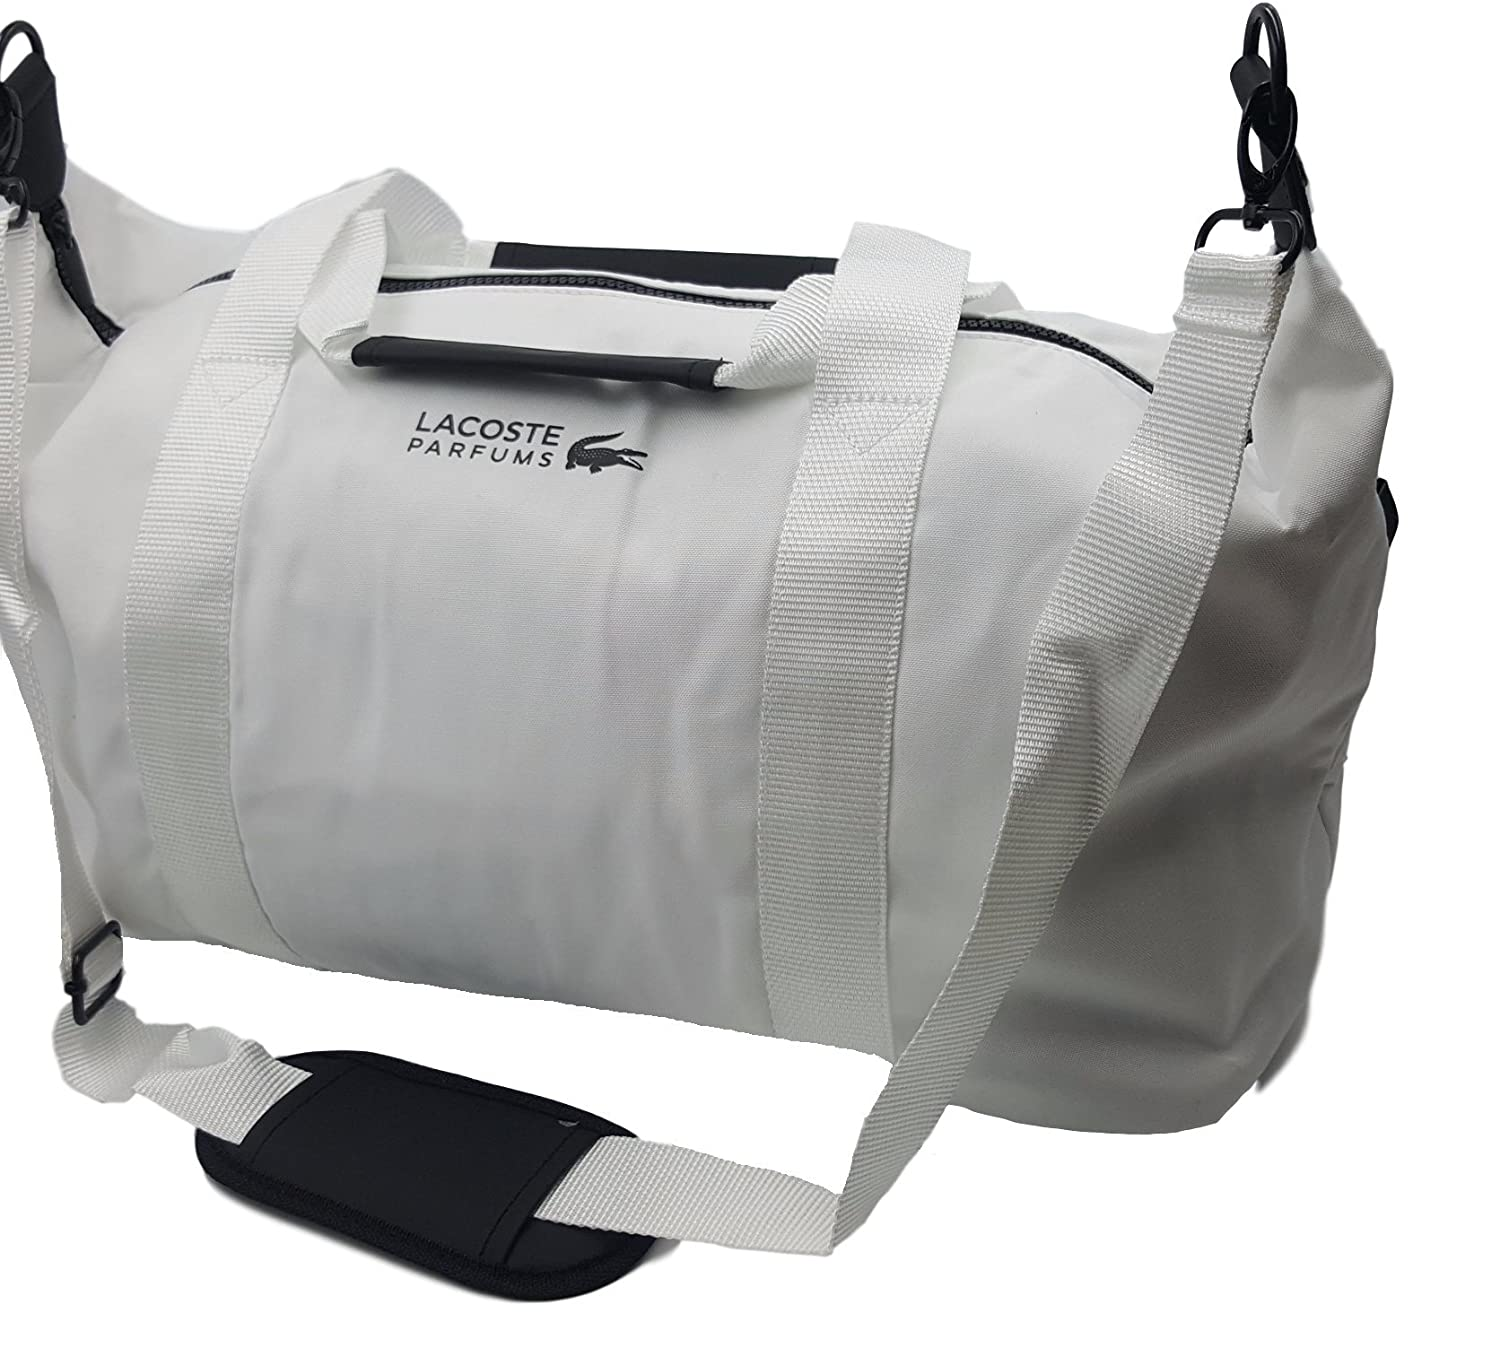 93ea132335 Lacoste Men's White Weekend Large Gym Sports Bag Travel Overnight Handbag  Black Zippers: Amazon.co.uk: Luggage